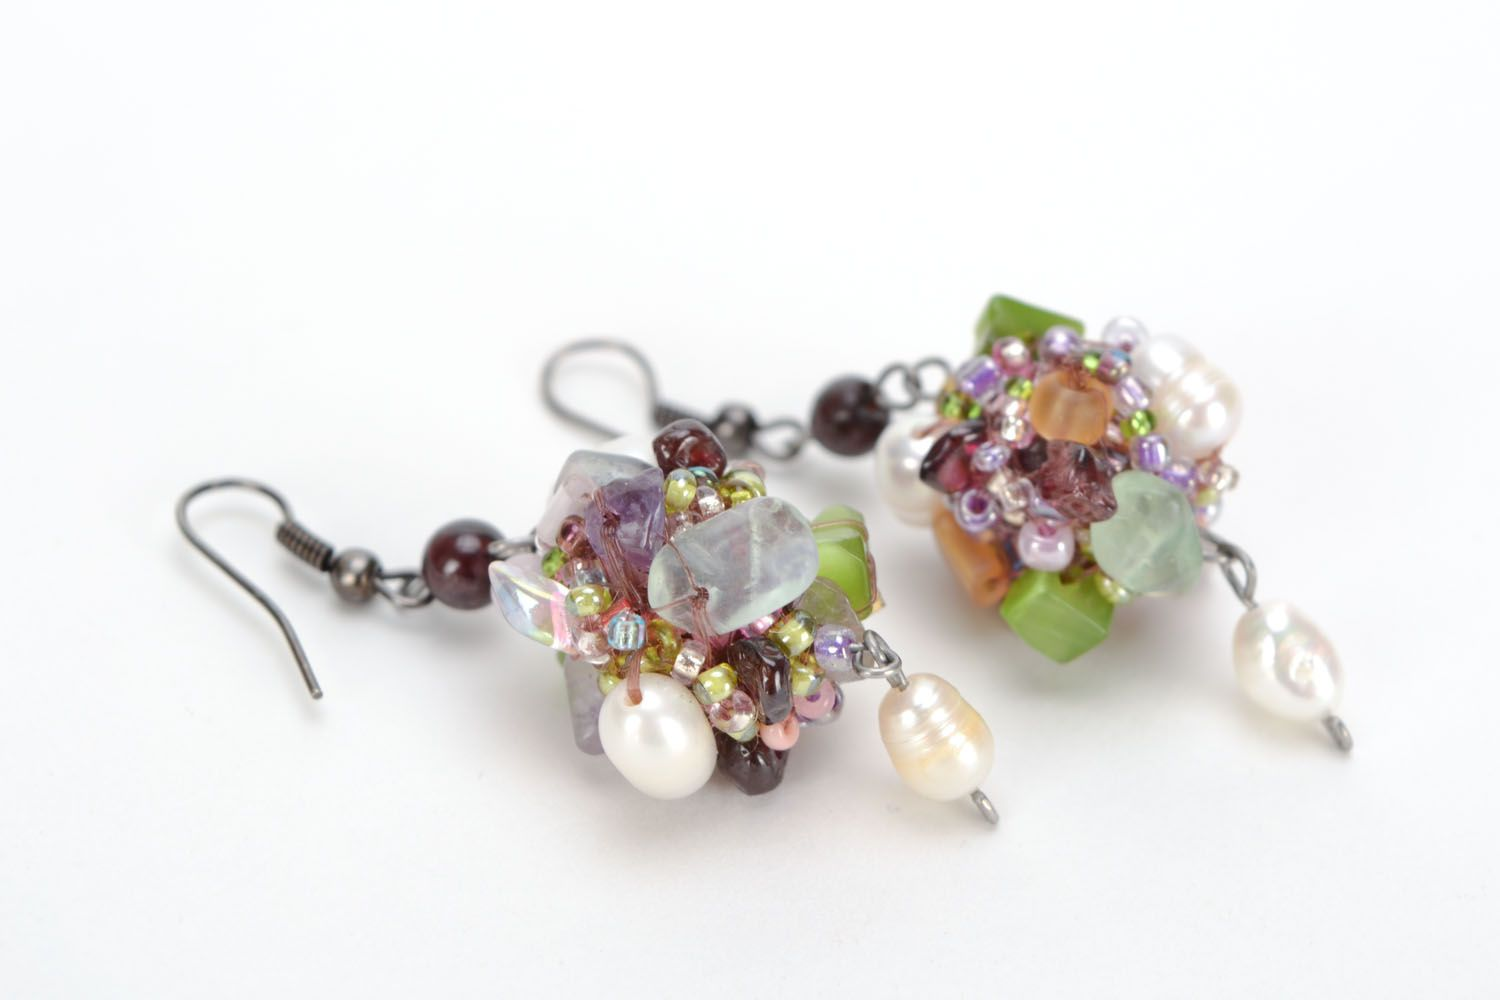 Homemade earrings with river pearls and natural stones photo 4